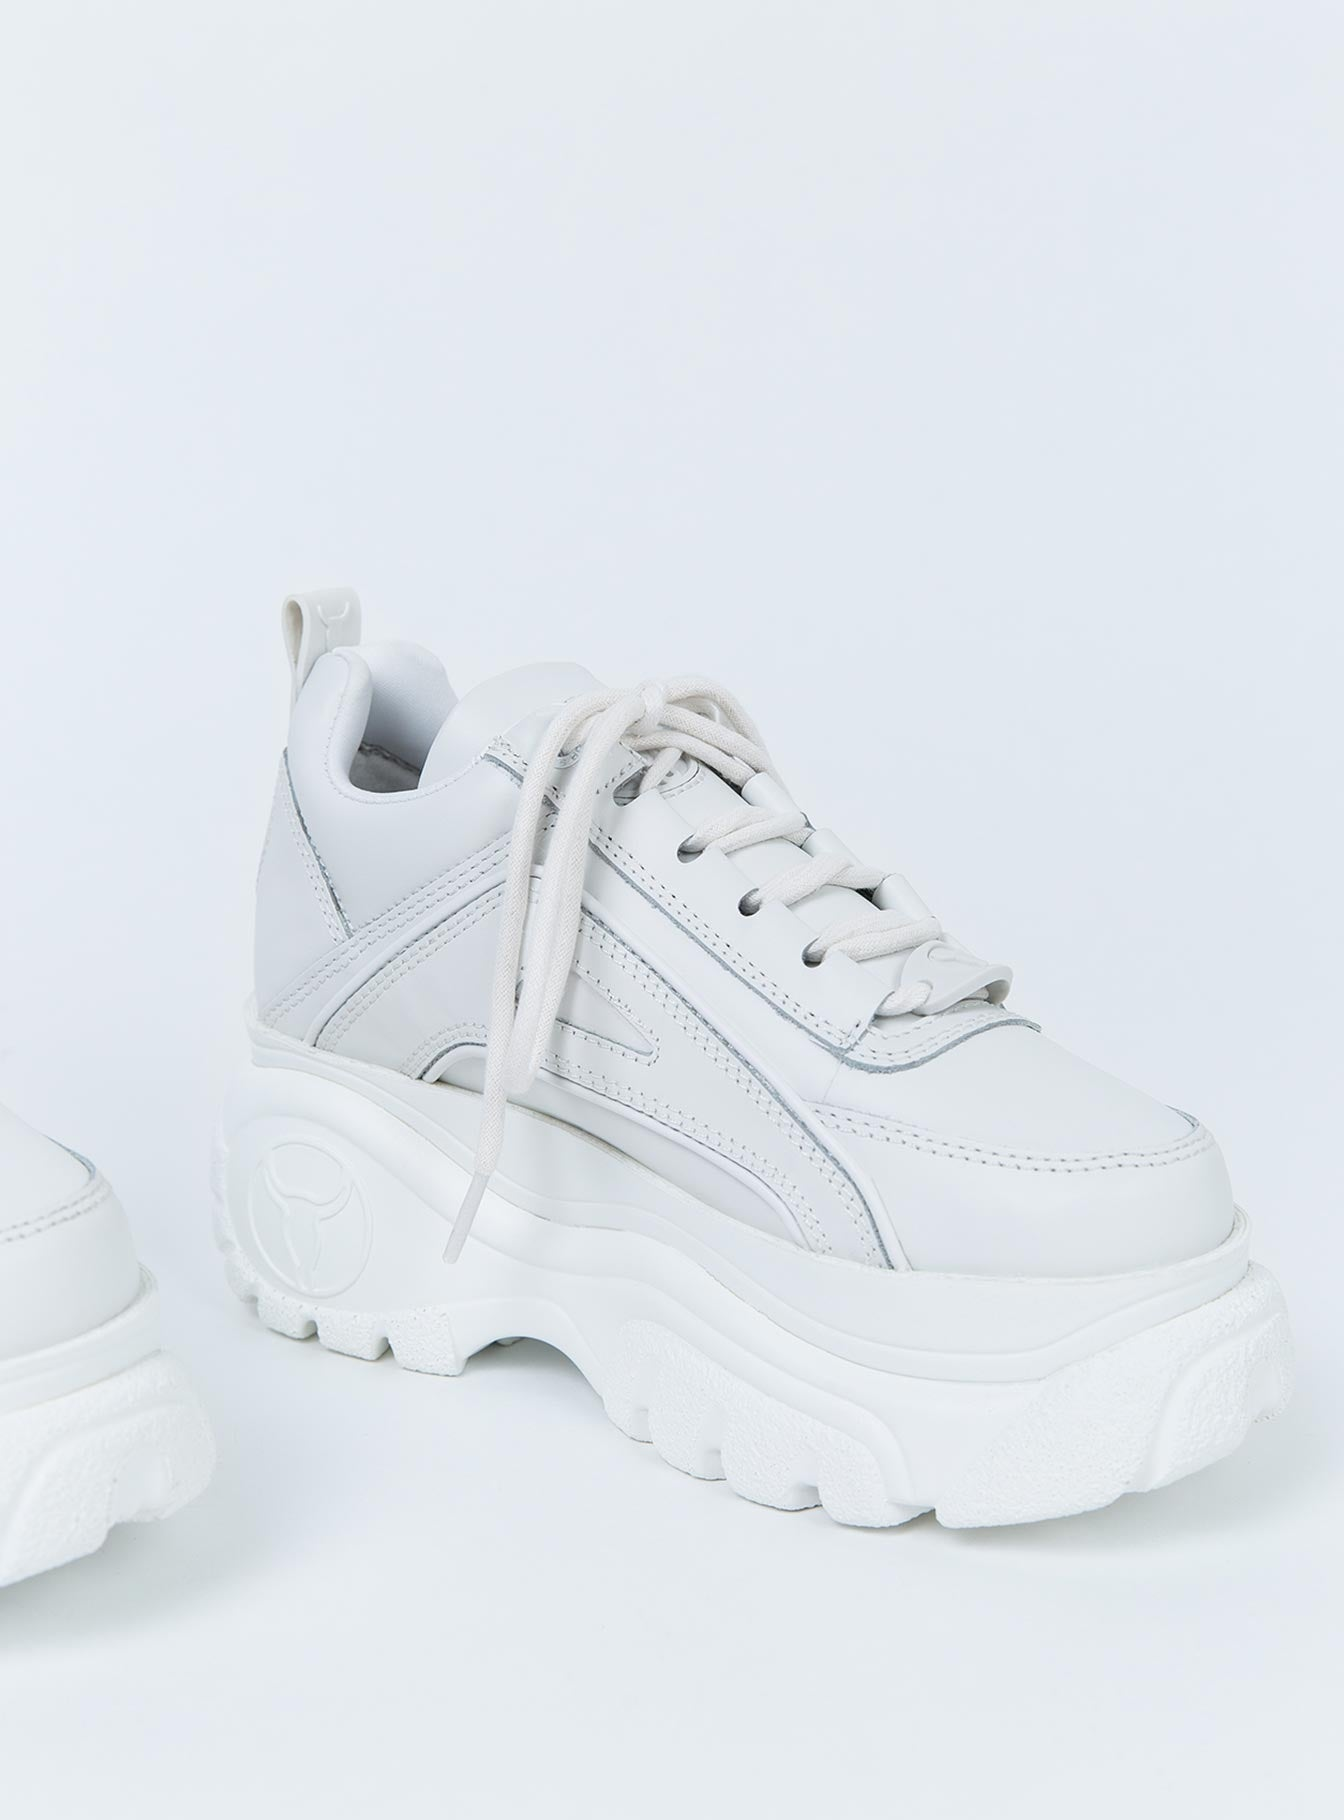 Windsor Smith Lupe Sneaker White